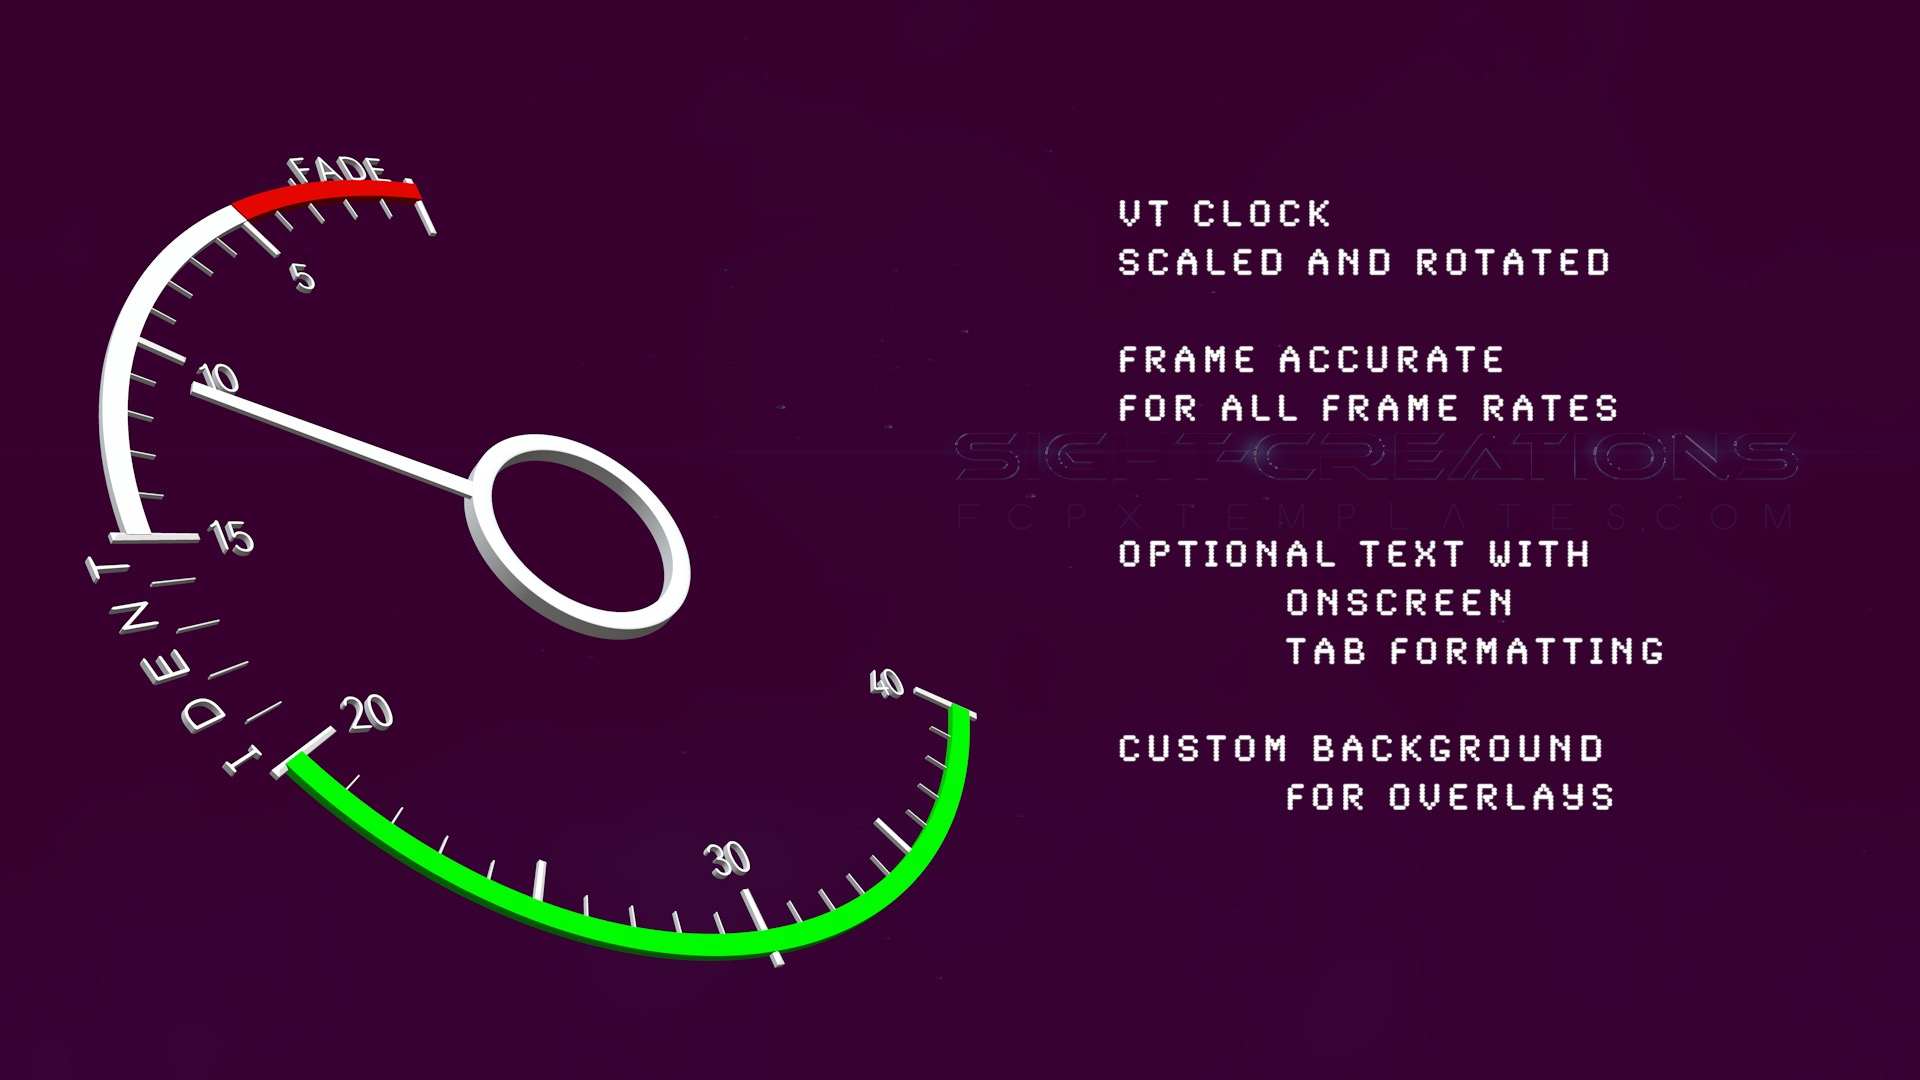 Broadcast VT Clock in 3D - Frame Accurate